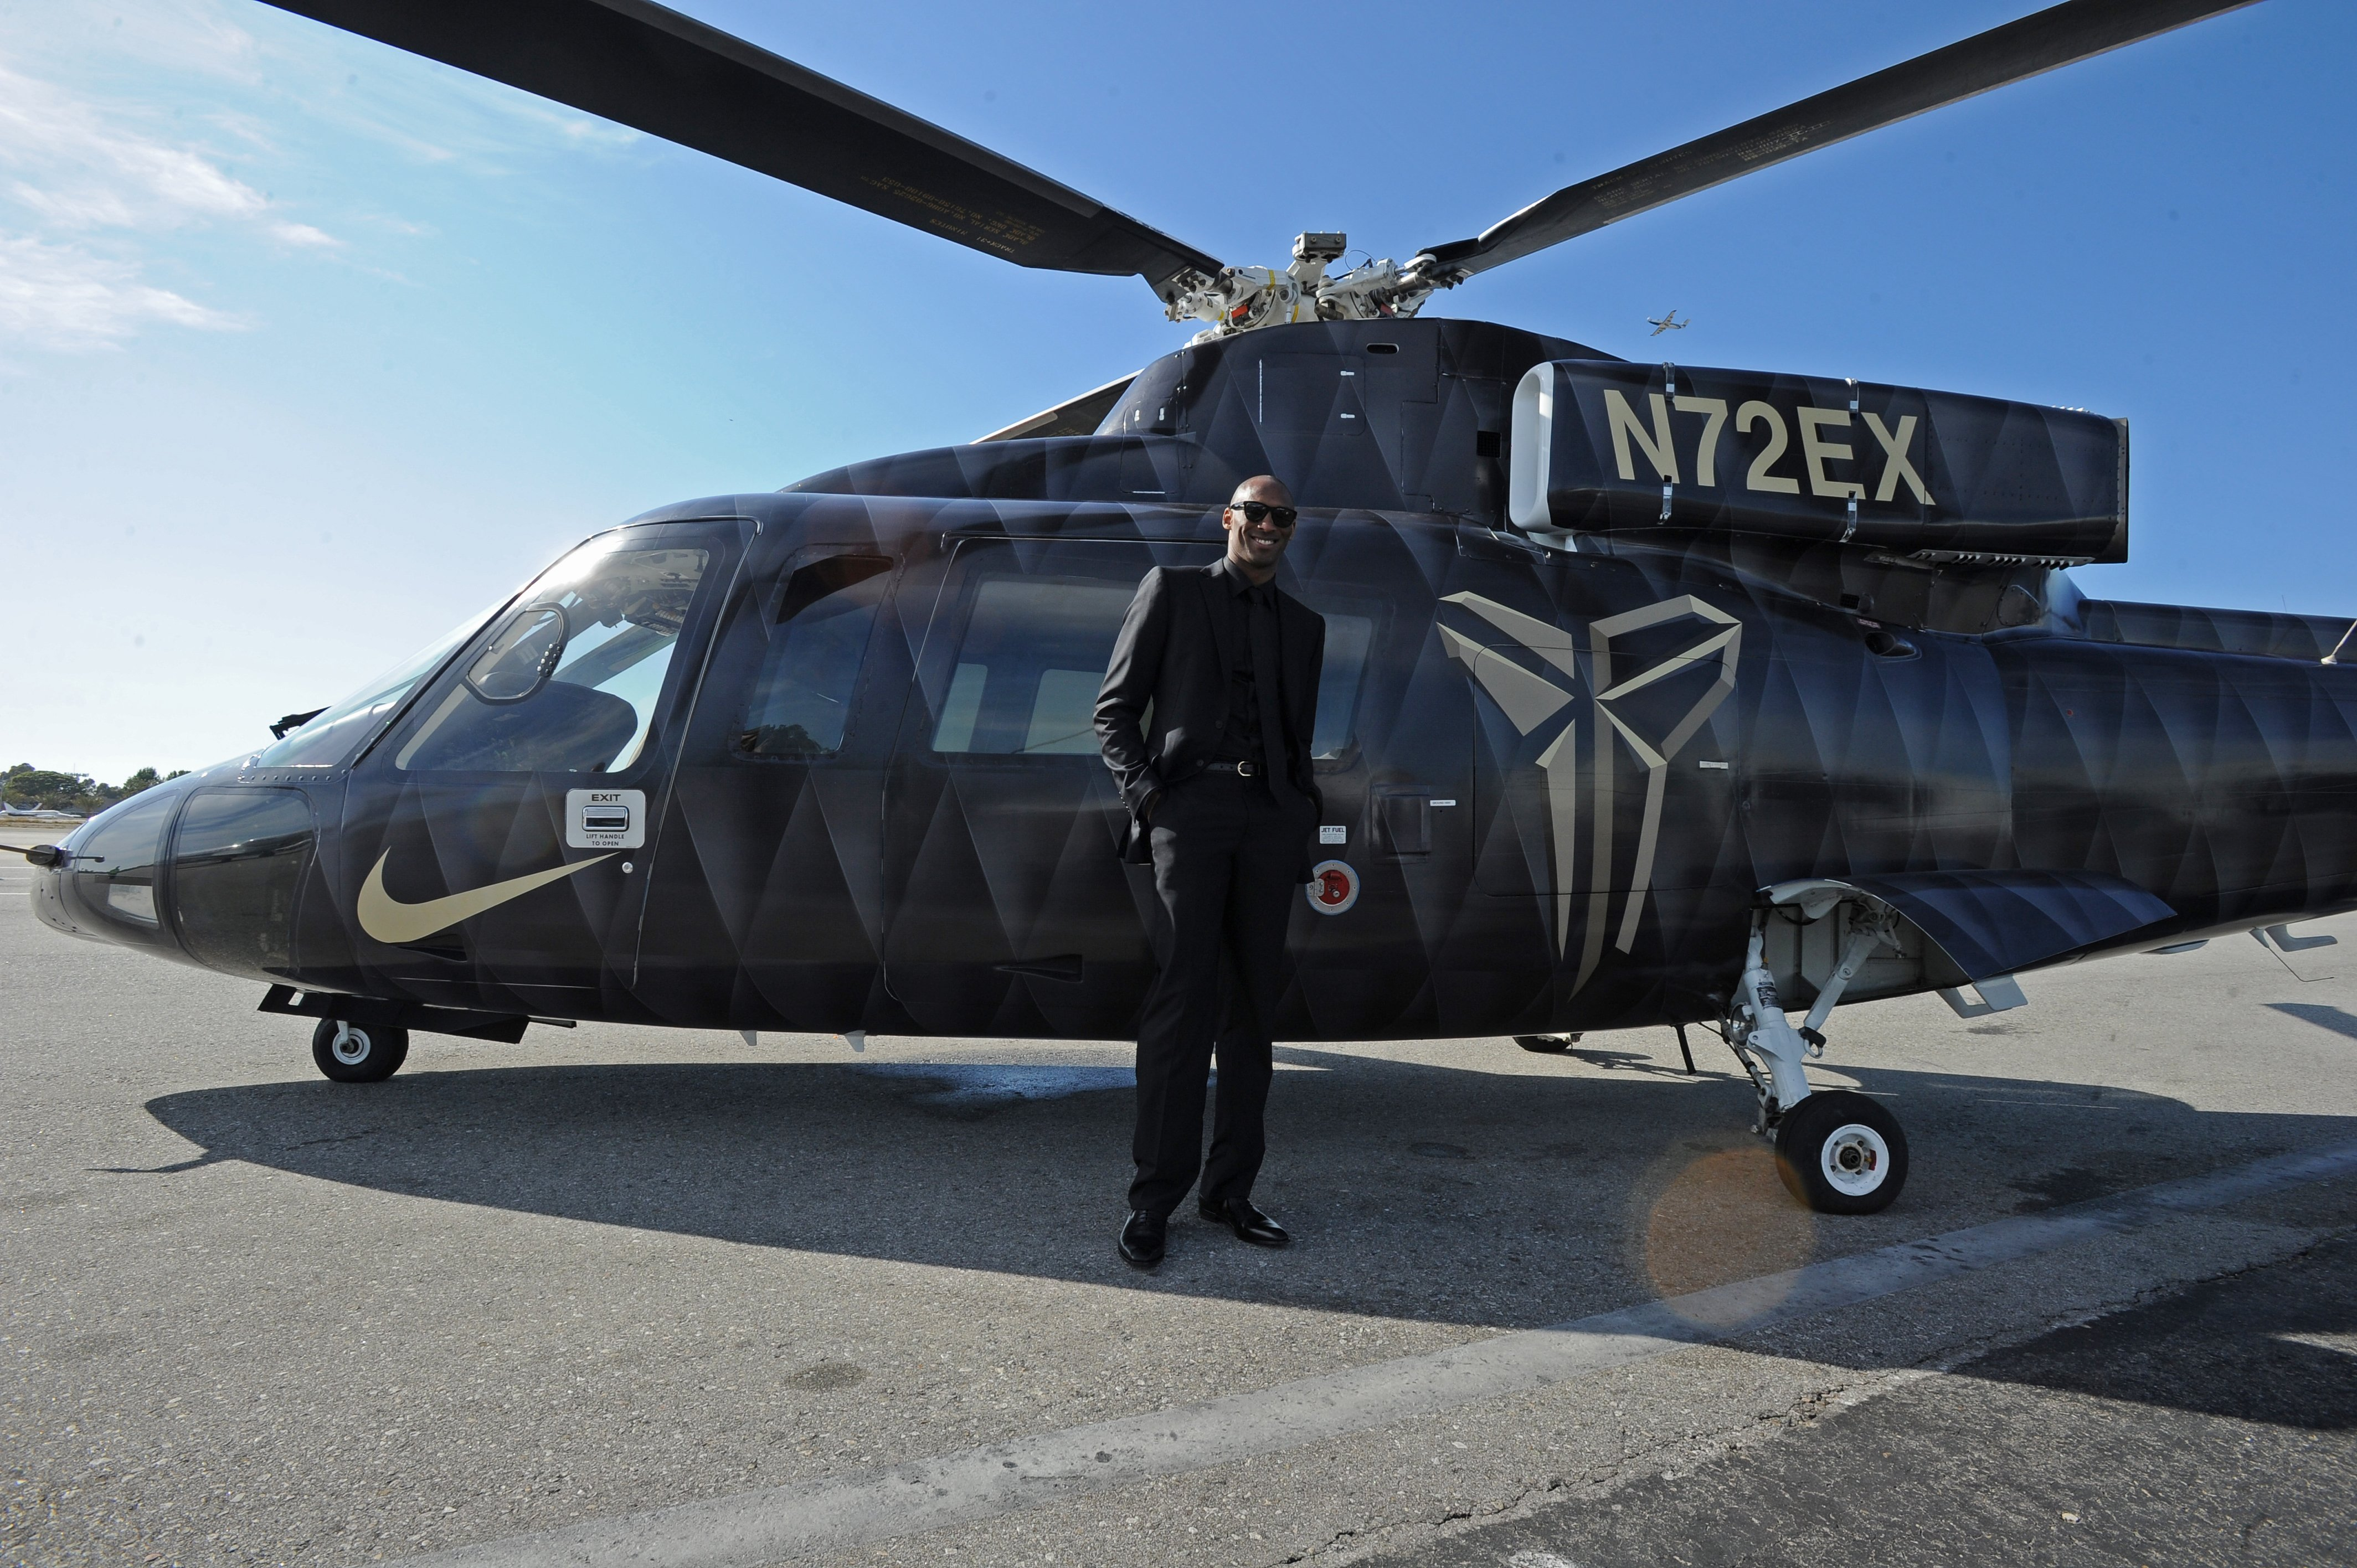 Kobe Bryant poses for a photo in front of the helicopter he took to his last game against the Utah Jazz on April 13, 2016 in California | Photo: Getty Images